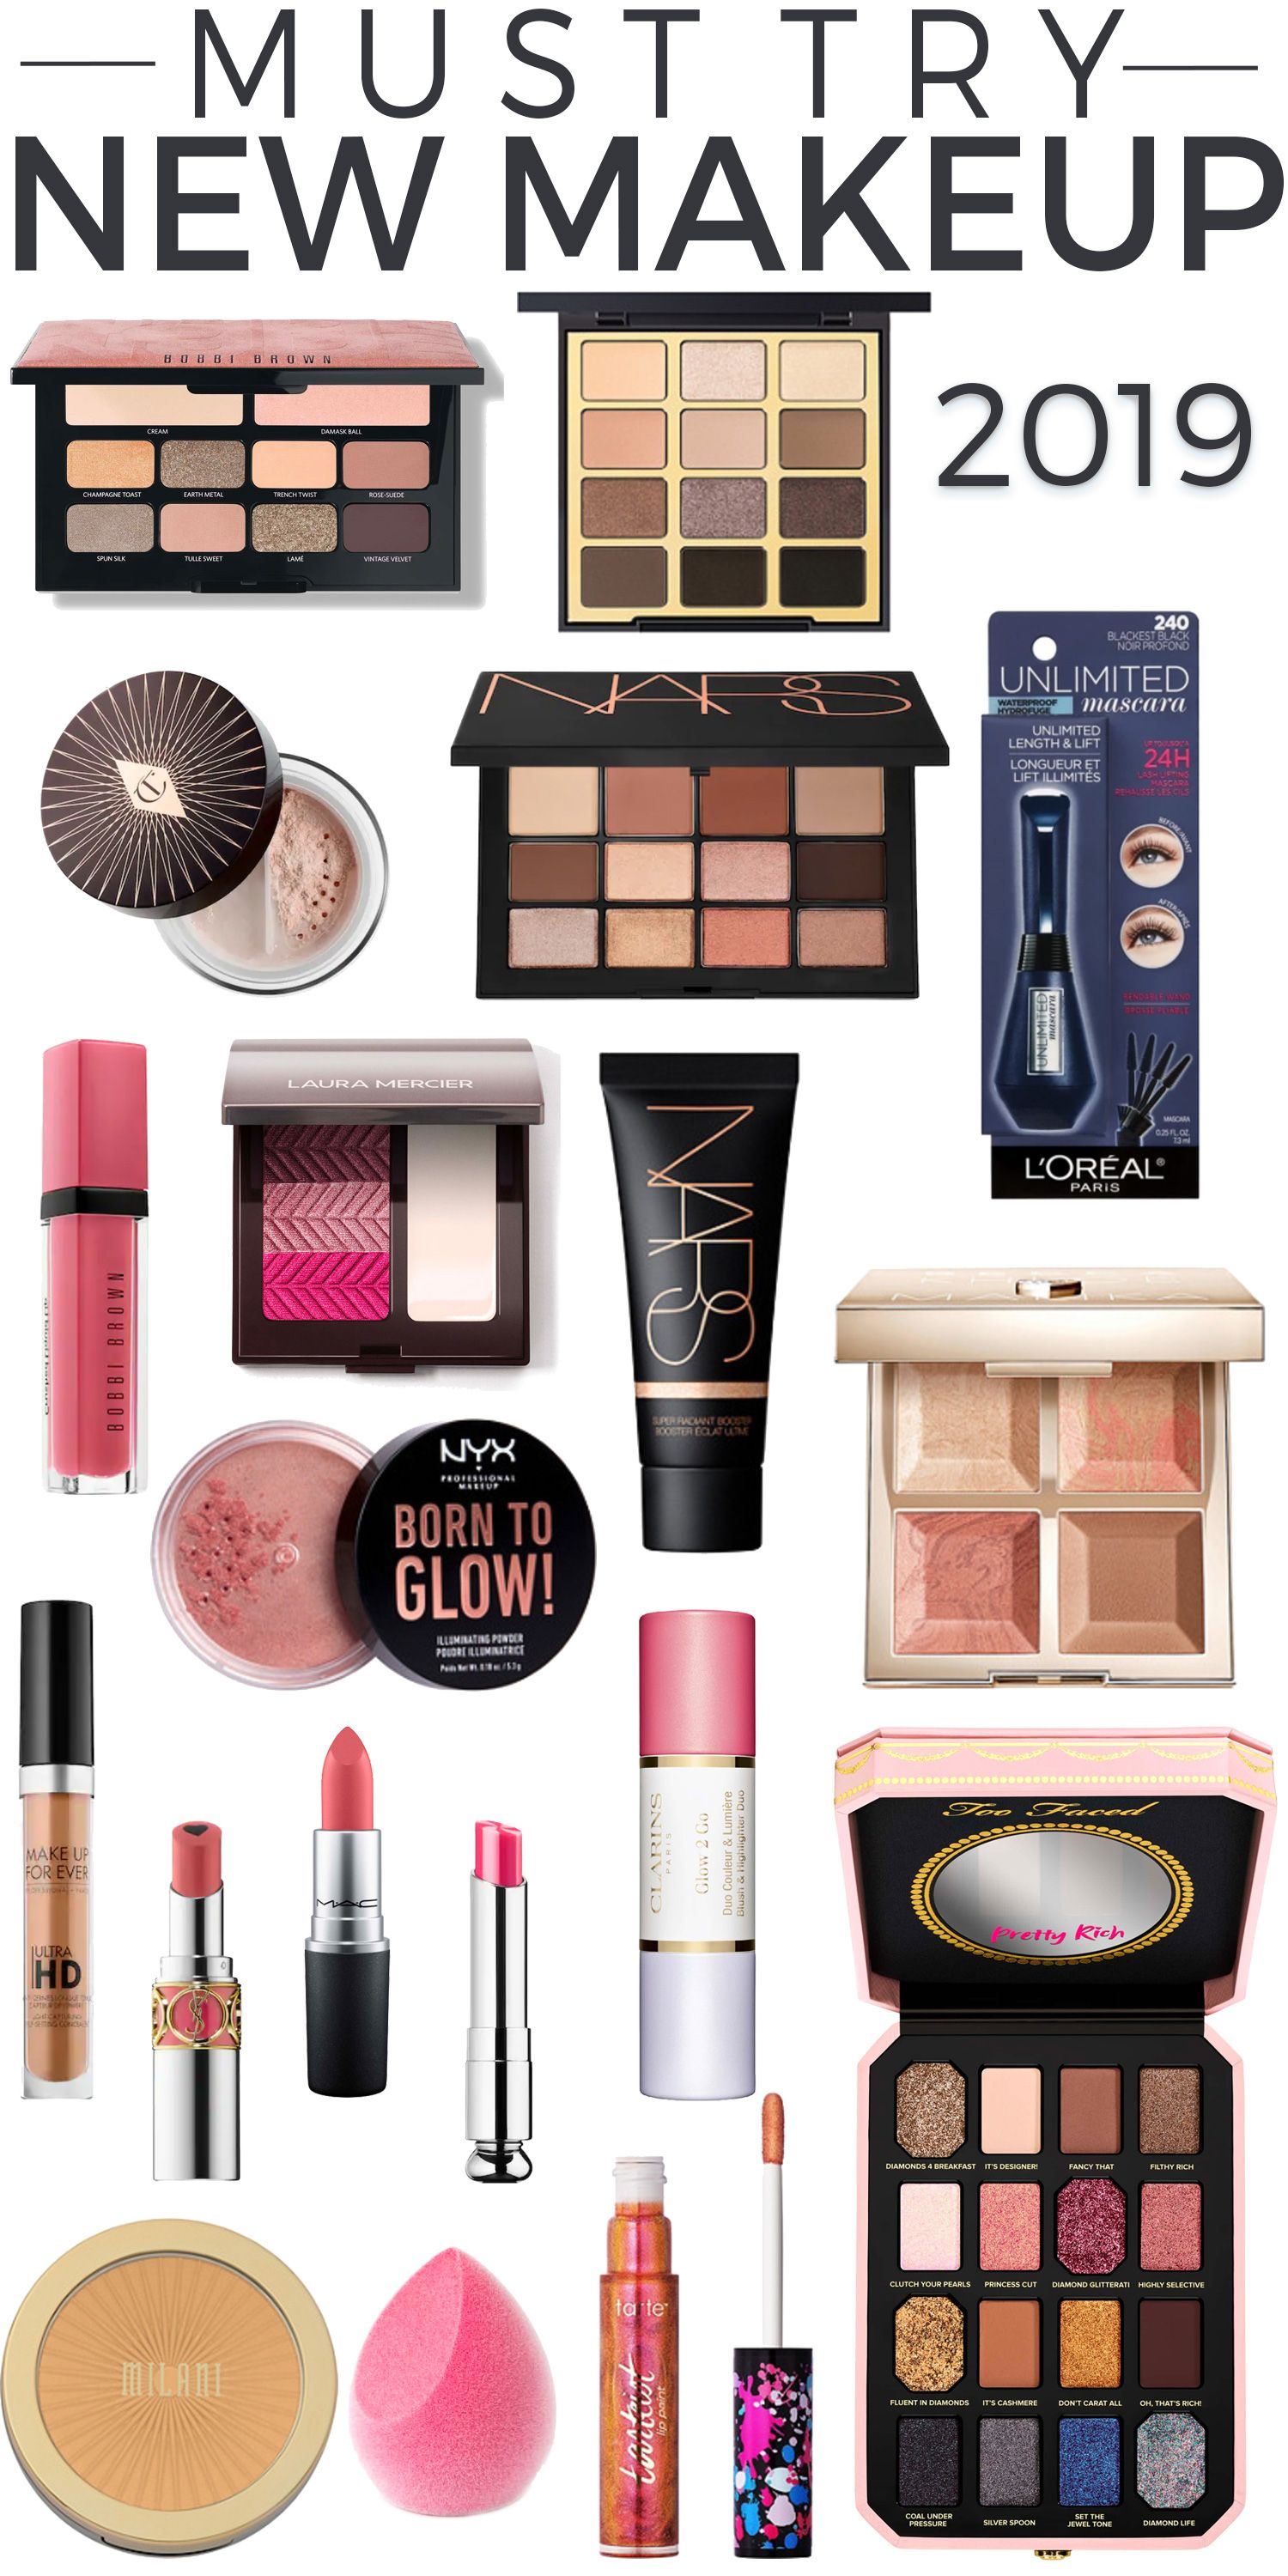 Best Beauty Products 2019 19 New Makeup Products to Put On Your Radar   MAKEUP   Makeup